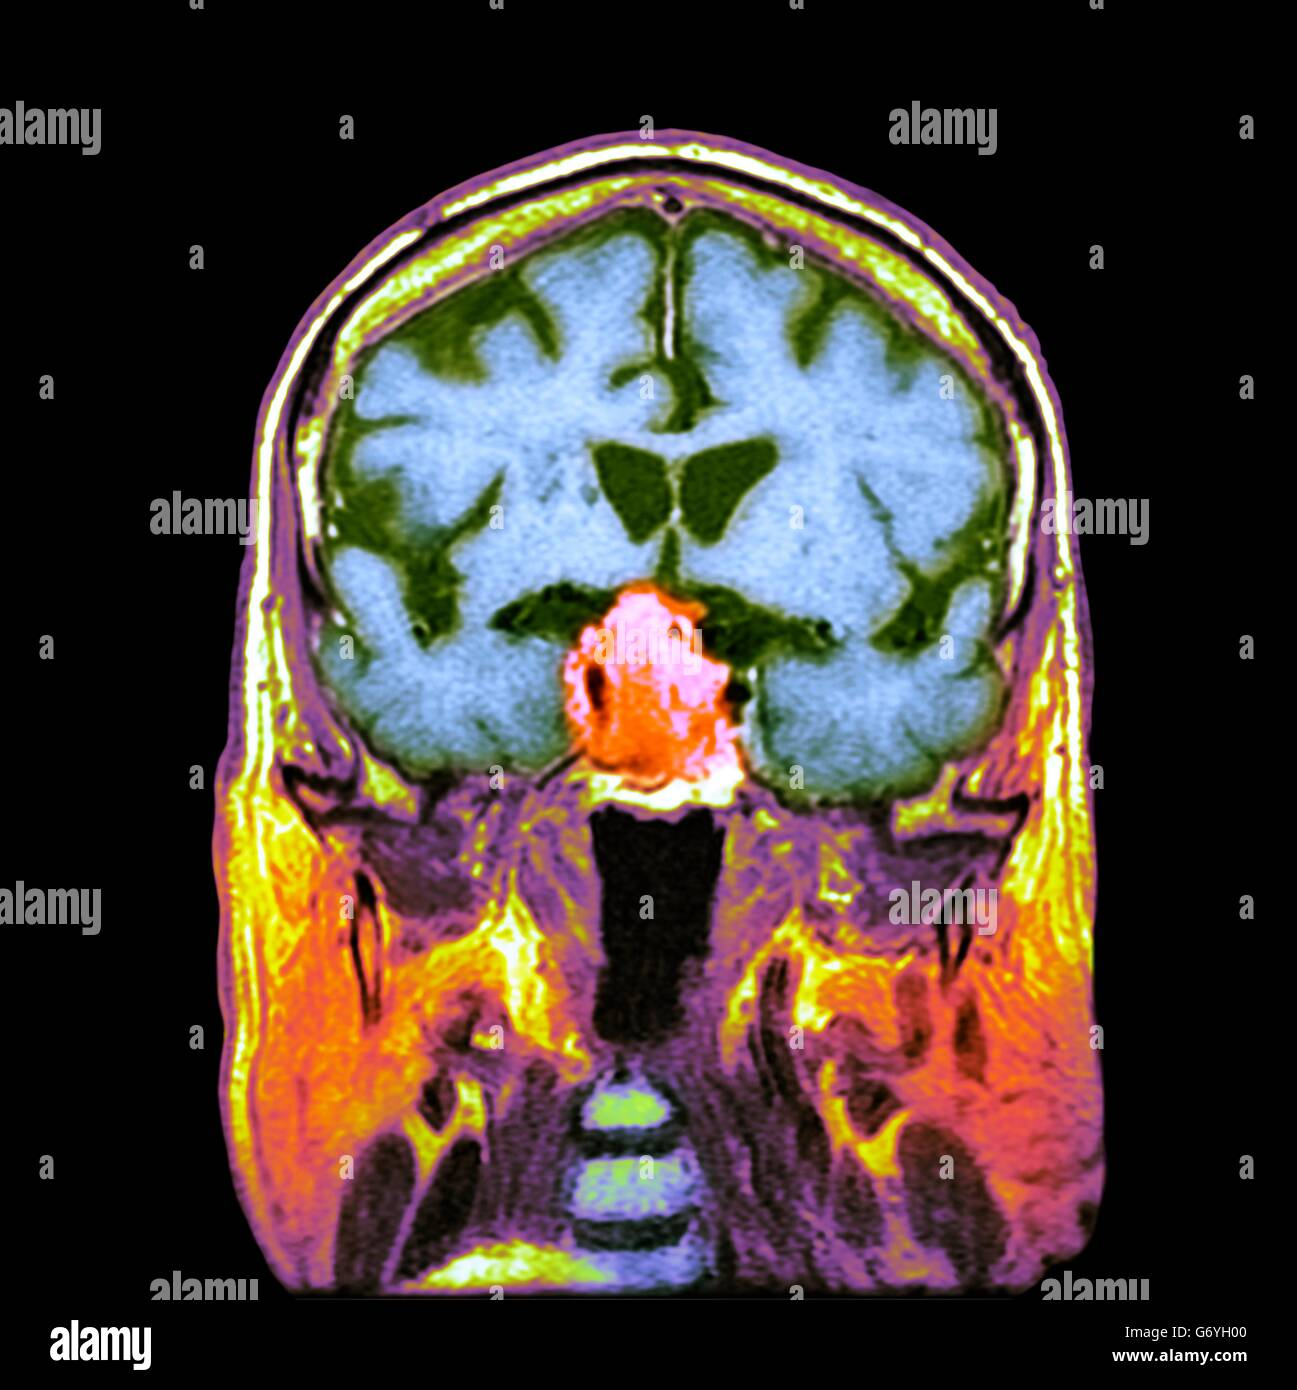 The Pituitary Gland Stockfotos & The Pituitary Gland Bilder - Alamy